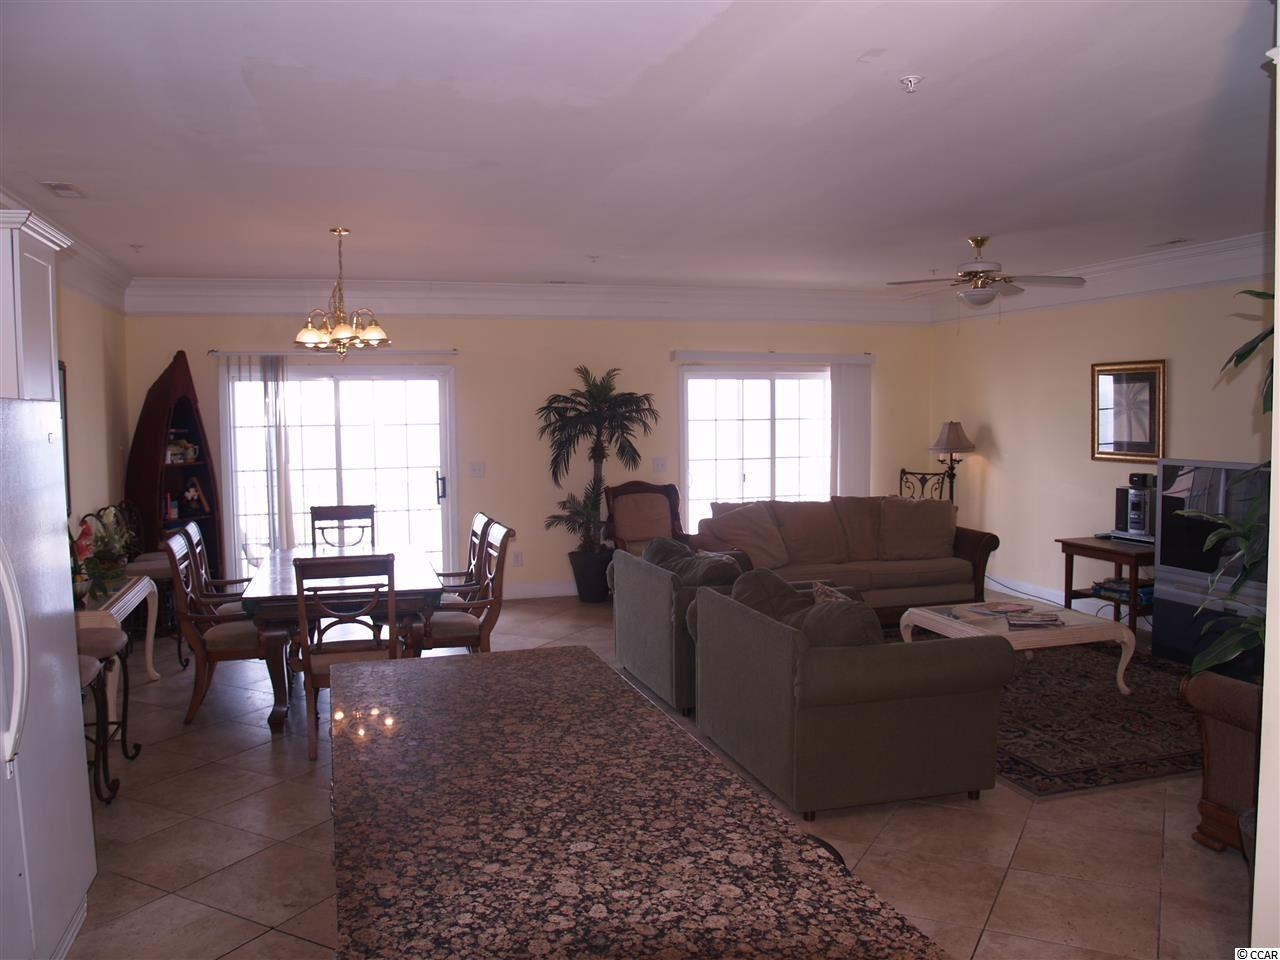 Atlantis Villas condo for sale in North Myrtle Beach, SC